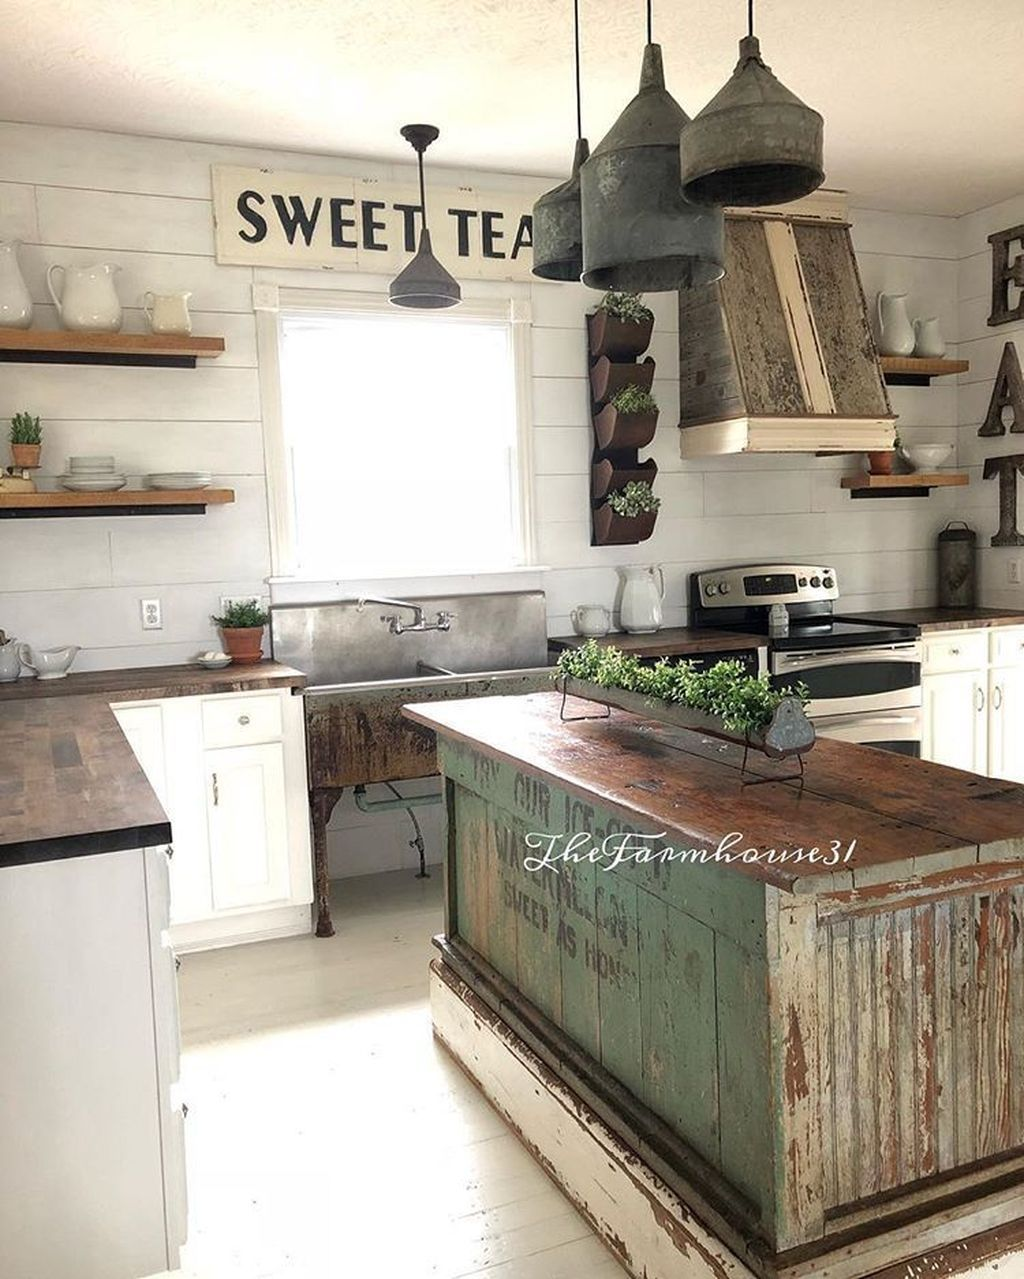 20 Stunning Country Farmhouse Design Ideas For Kitchen Coodecor Farmhouse Kitchen Design Old Farmhouse Kitchen Kitchen Design